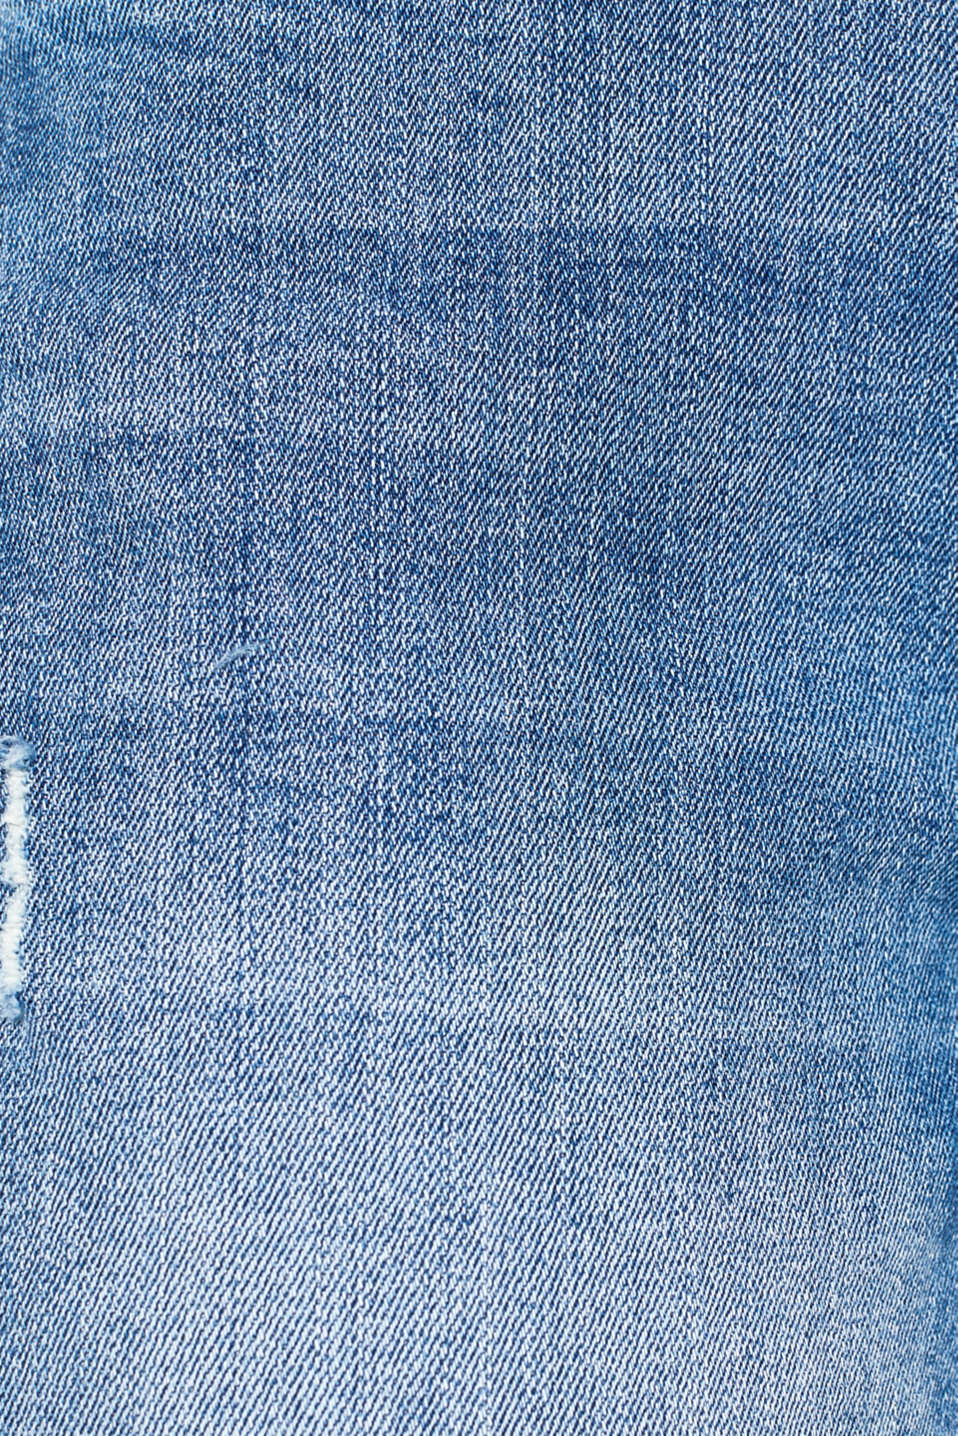 Stretch jeans with a button fly, BLUE MEDIUM WASH, detail image number 4